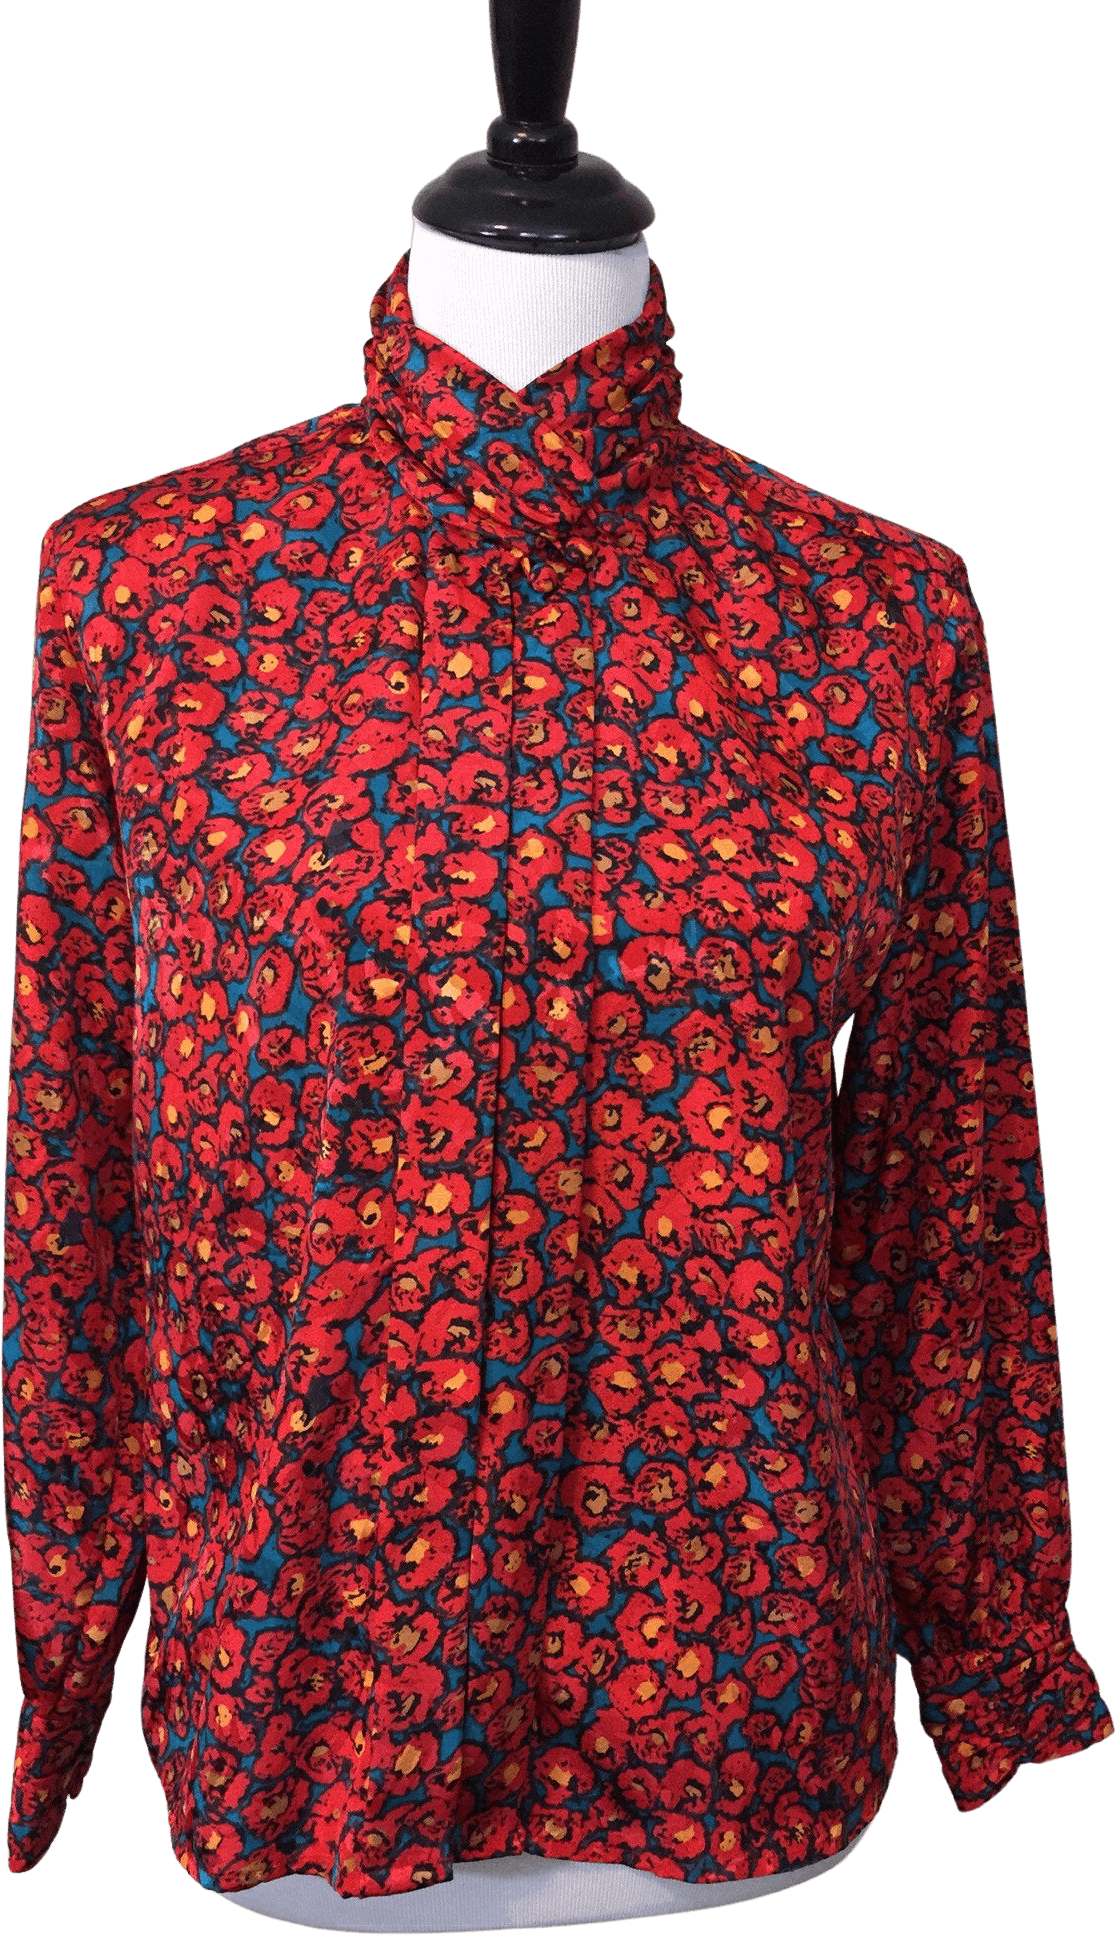 80s Blouse with Red Floral Collar